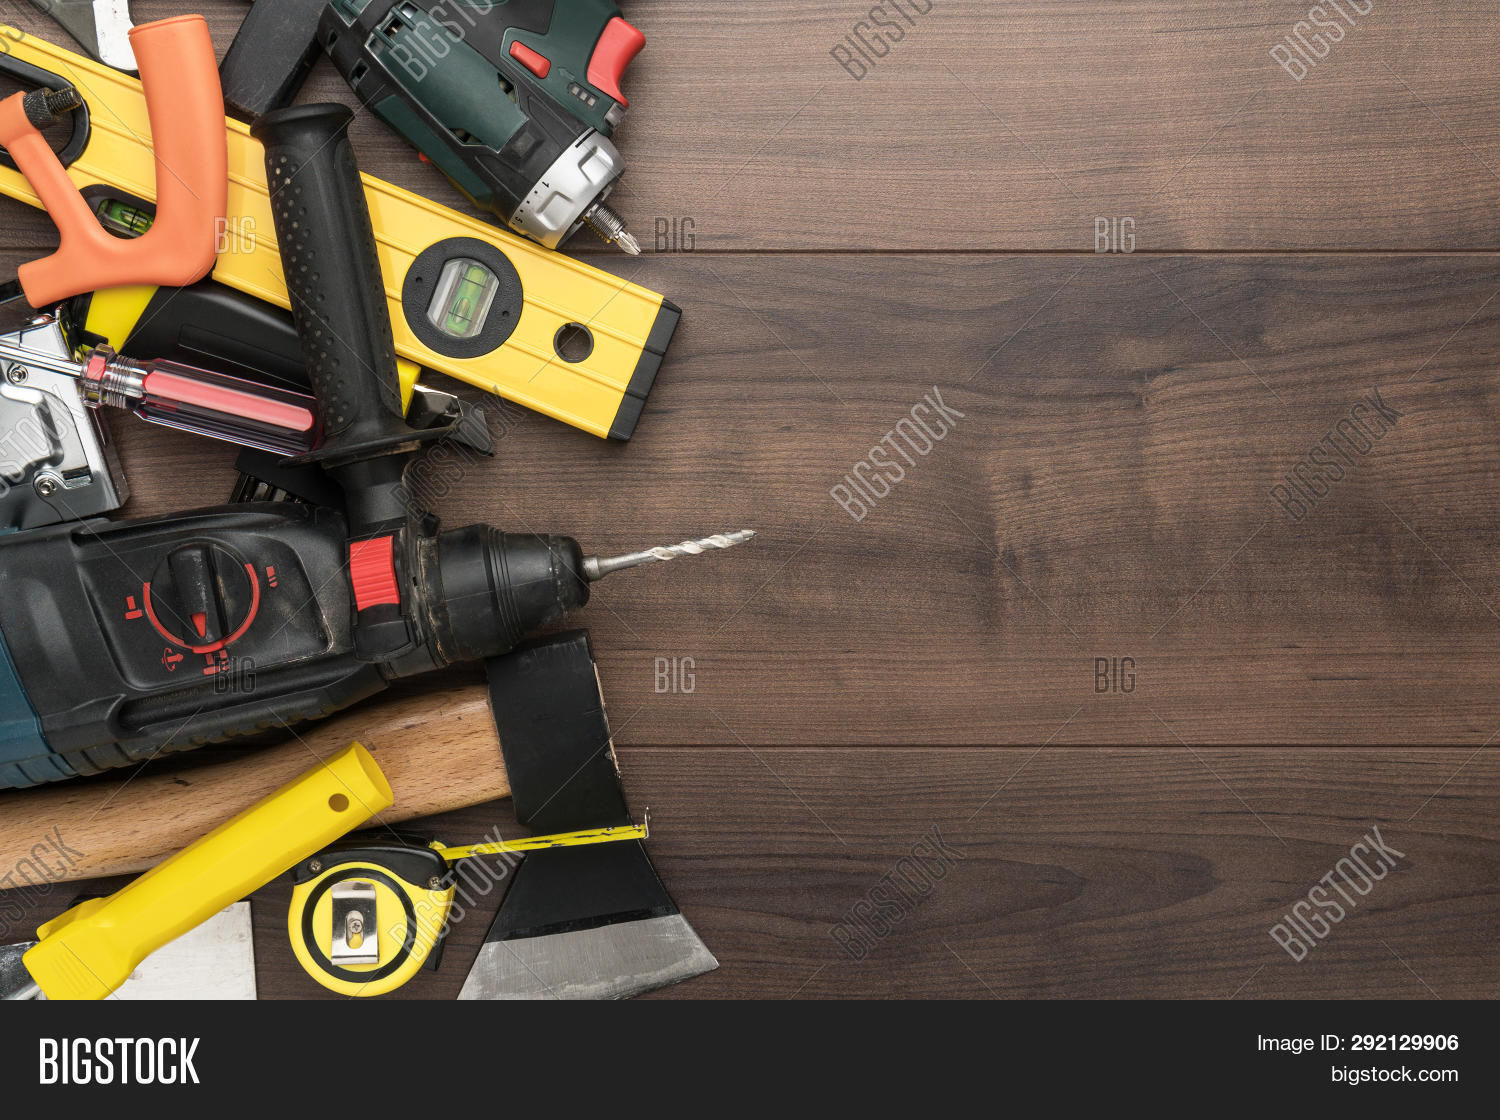 adjustable,ax,axe,background,bubble,building,carpentry,construct,construction,device,drill,drilling,electric,electrical,equipment,hacksaw,hammer,hardware,home,impact,industrial,industry,instrument,level,machine,maintenance,perforate,perforator,power,professional,puncher,repair,rock-drill,roto-drill,screw,screwdriver,table,tape-measure,technology,tool,wood,wooden,work,wrench